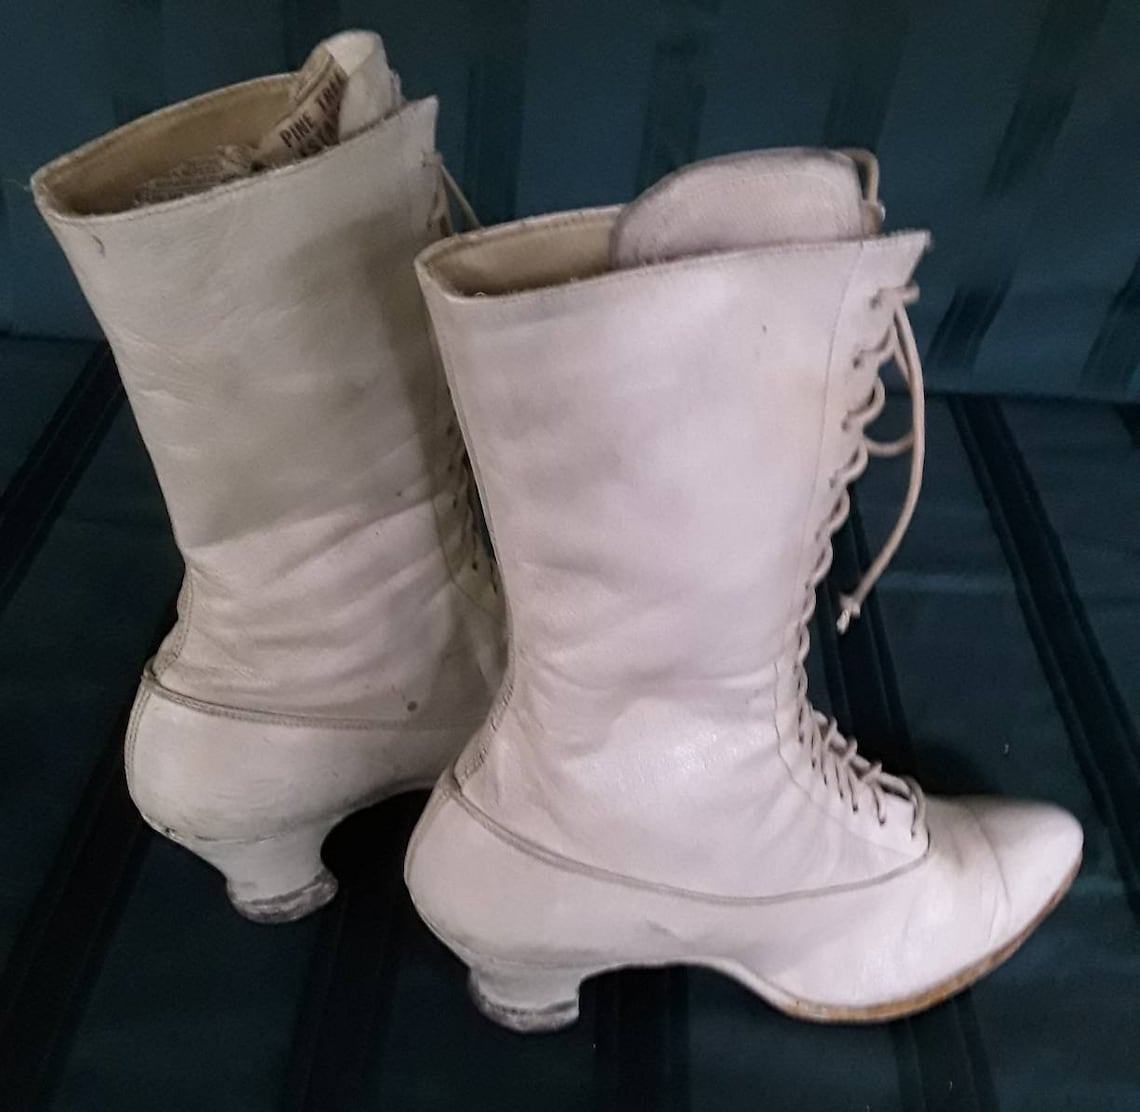 Early 1900's Victorian White Leather High Top Boots. - Big Sale qEVNA